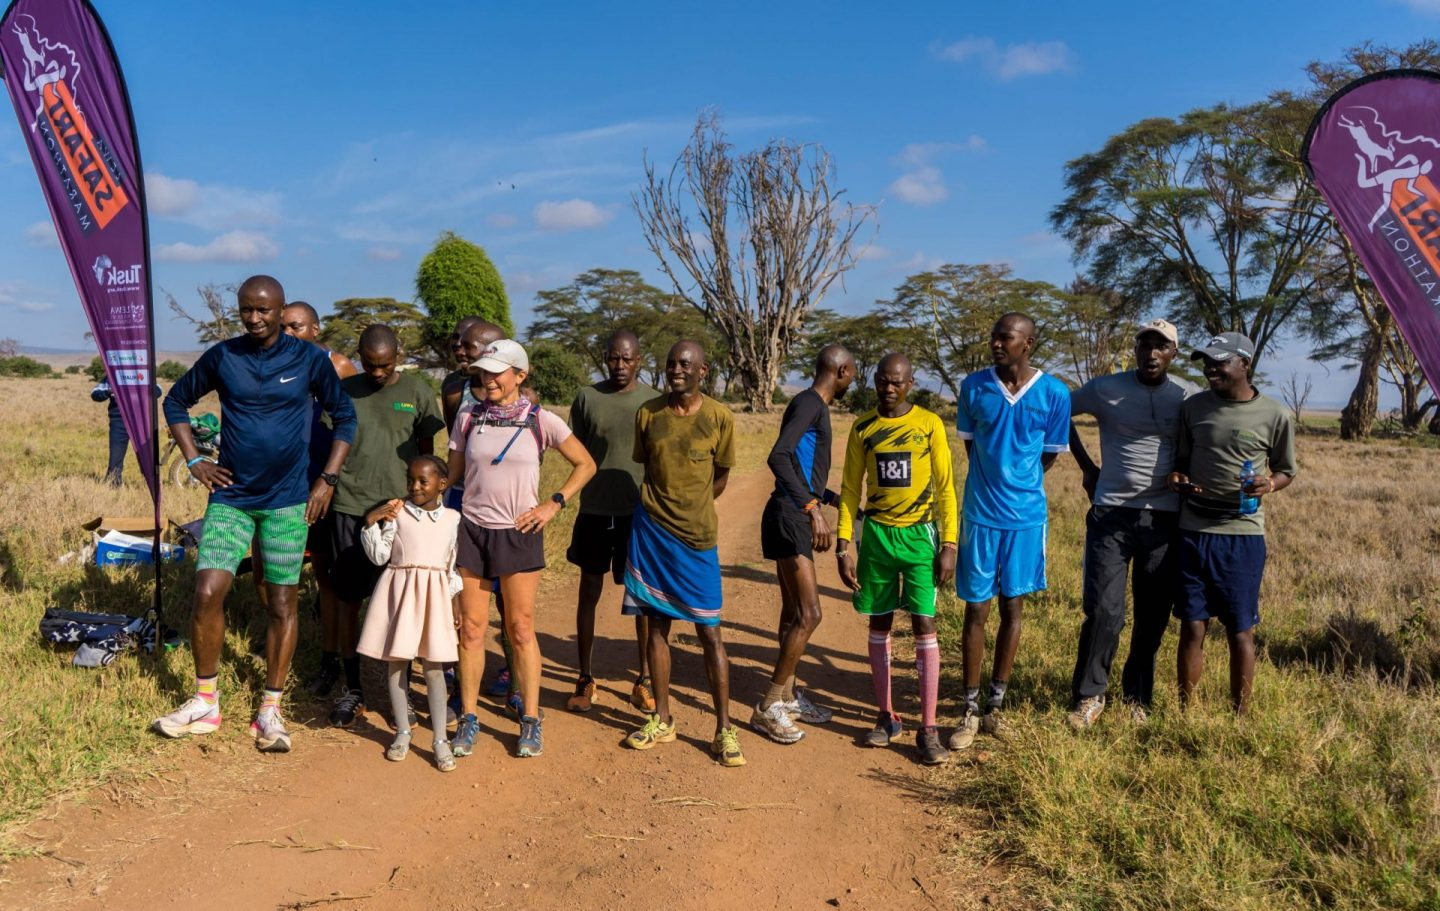 Rangers, project staff and local community members ran the physical route at the Lewa Wildlife Conservancy (c) David Kabiru